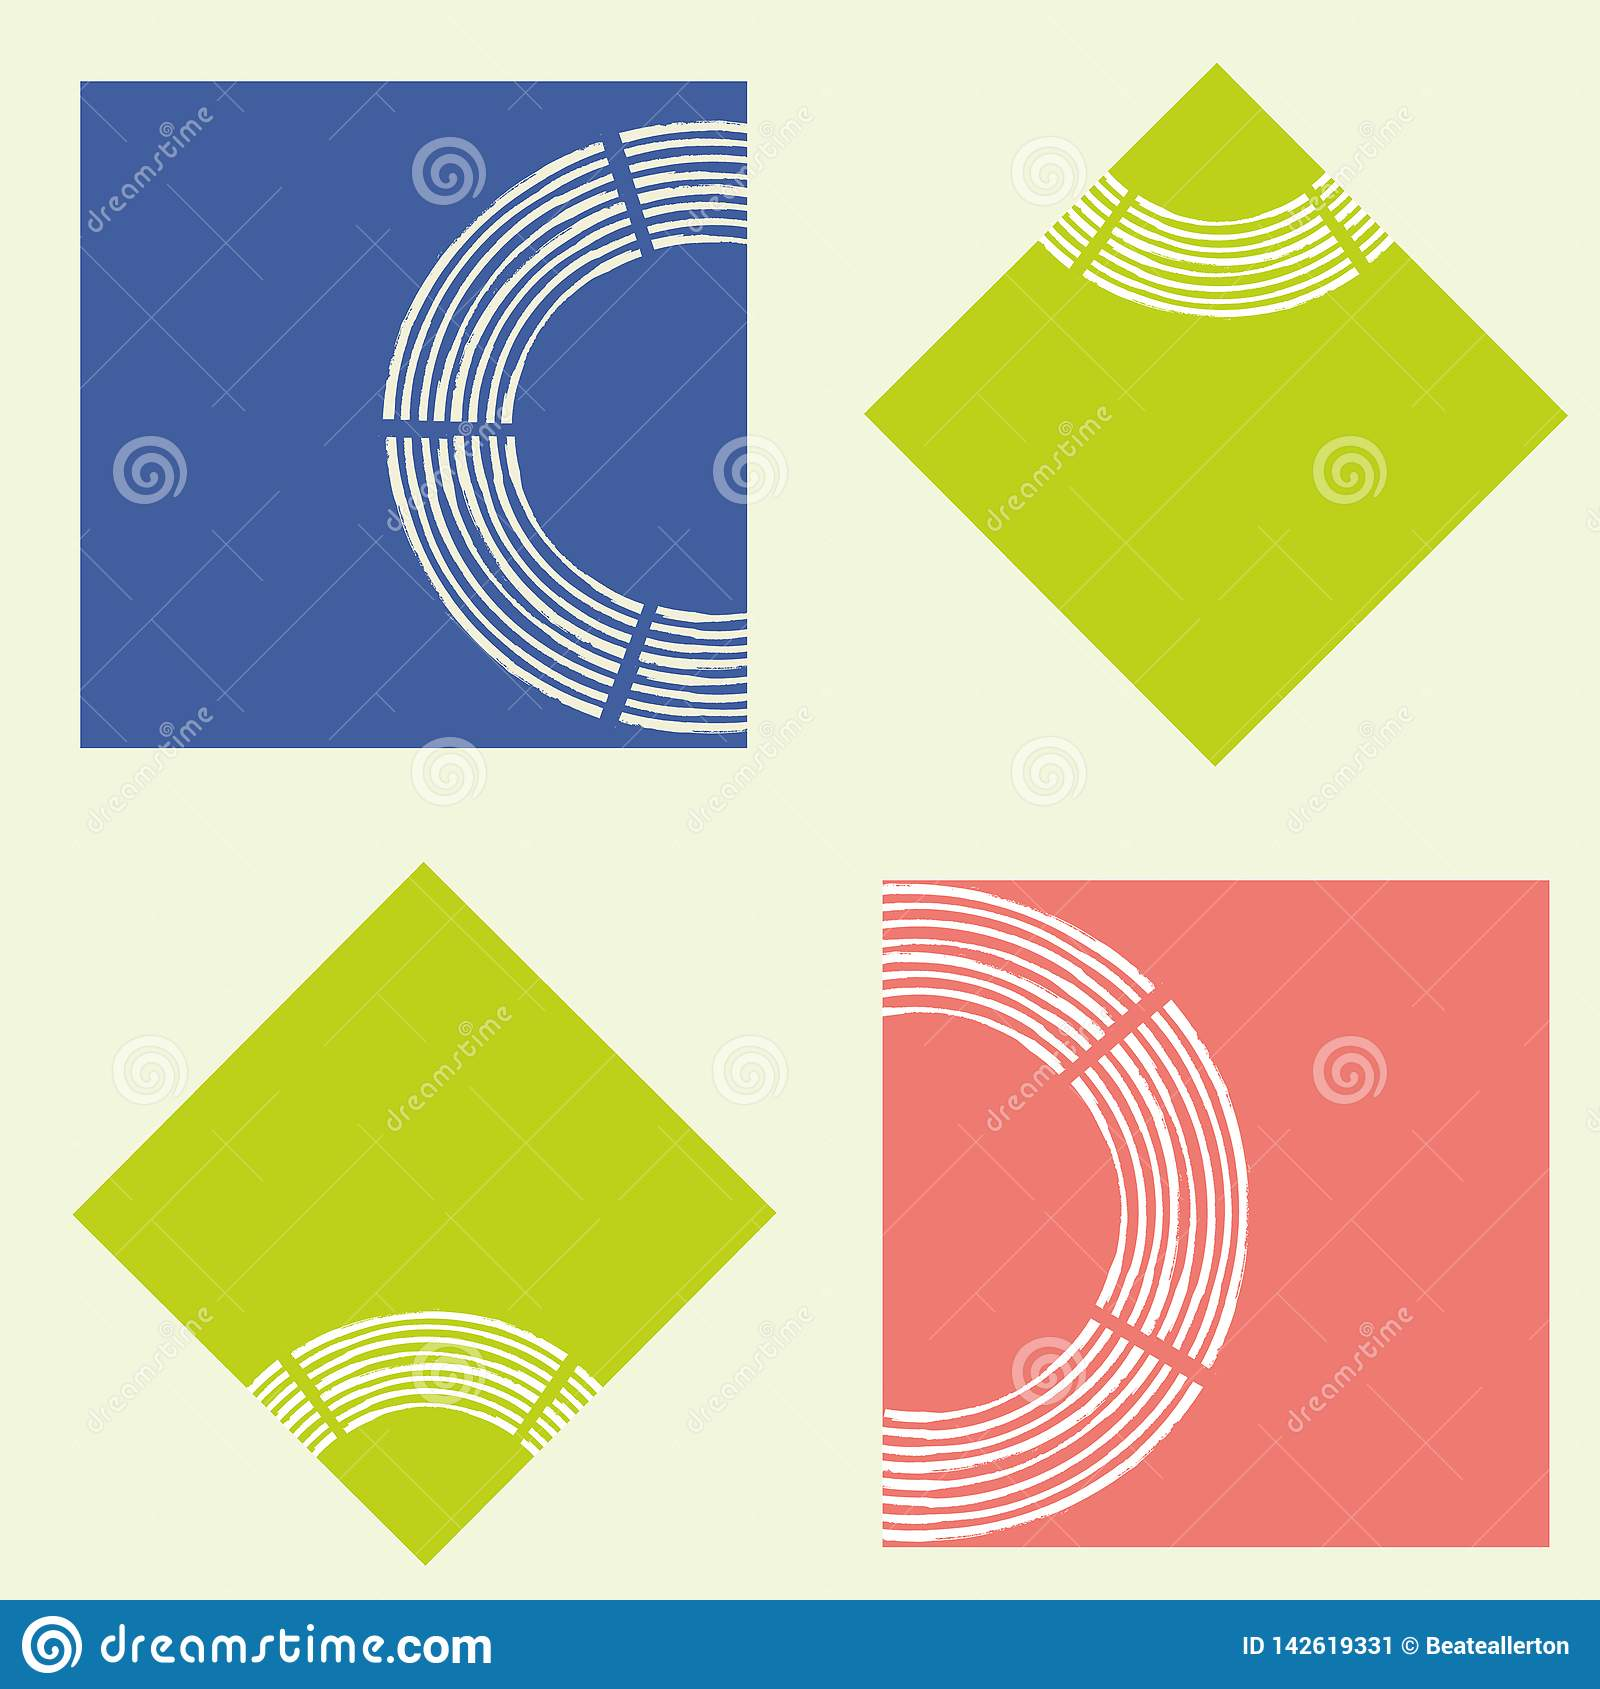 Modern abstract lime, coral and blue squares with brush semi circle texture. Seamless geometric vector pattern on light